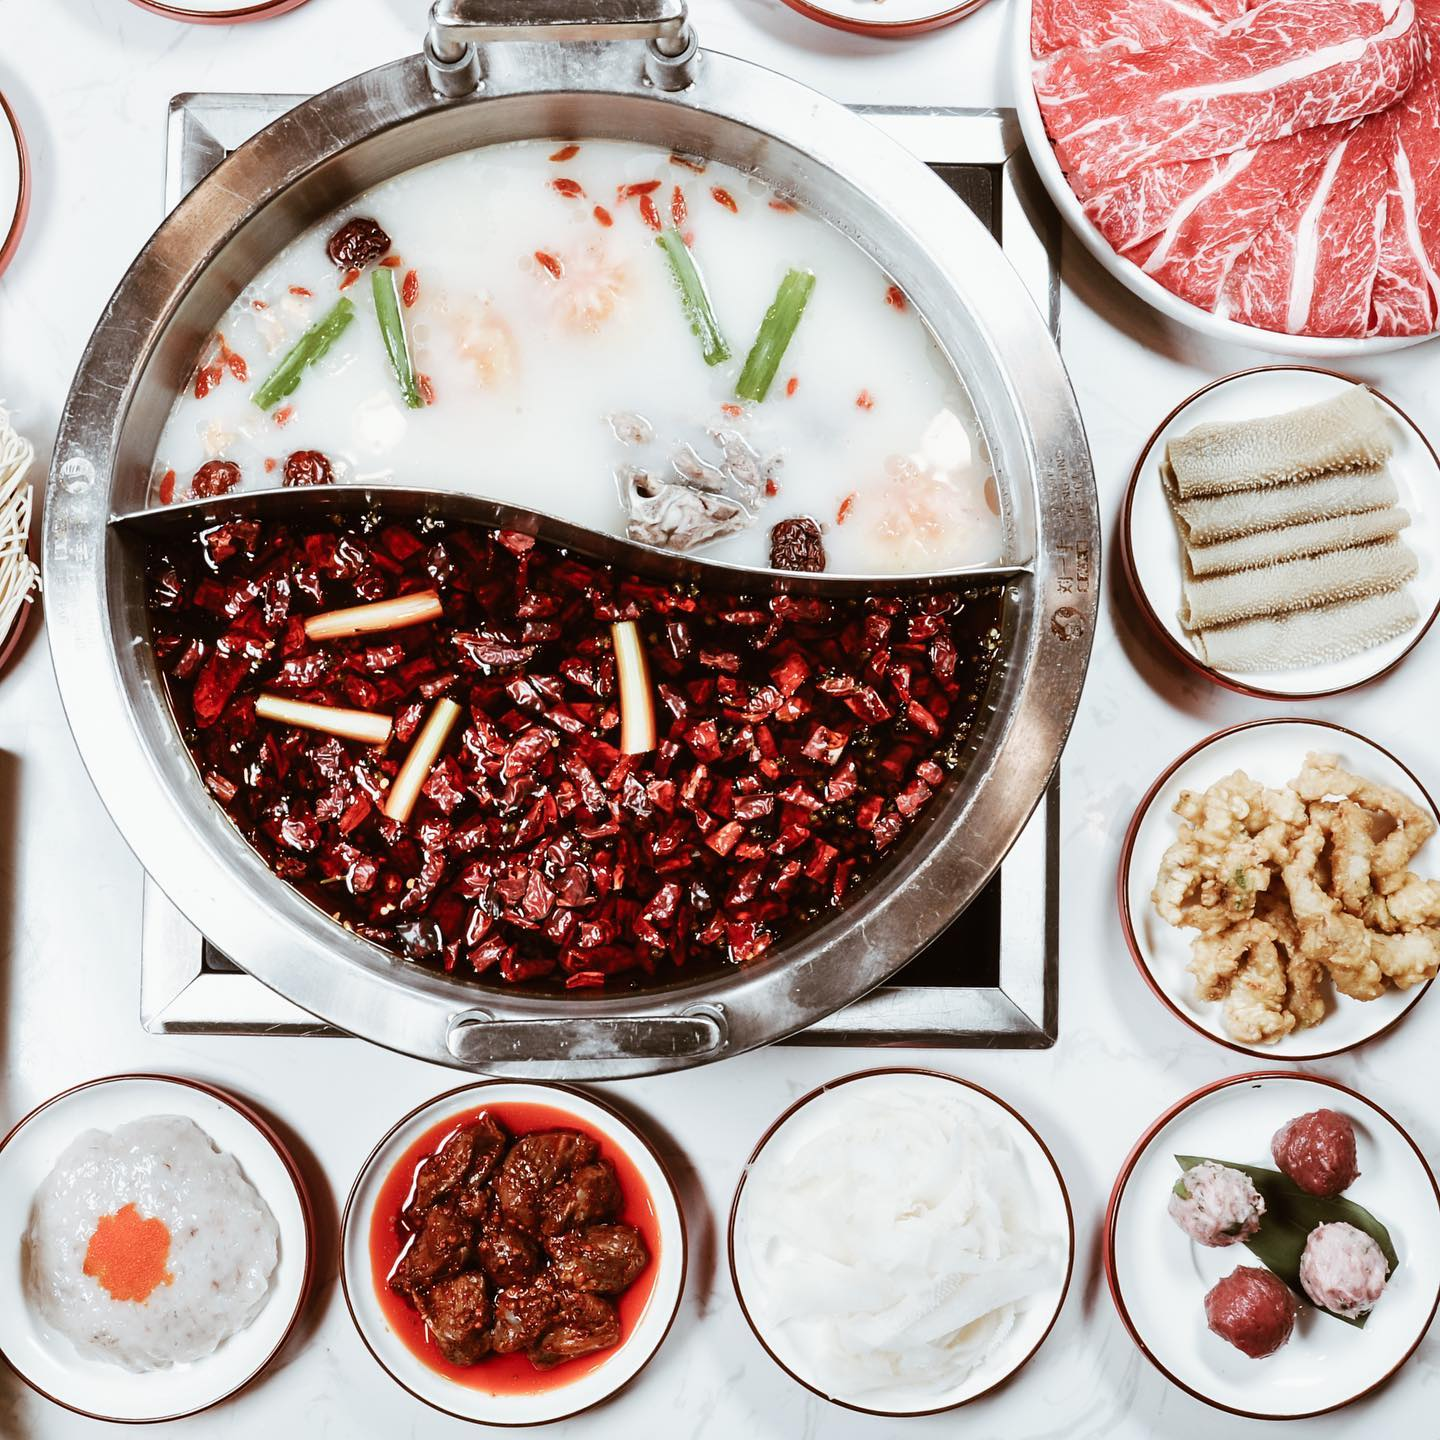 A half-and-half hot pot garnished with chiles, green onions. A selection of dishes sits on the side.